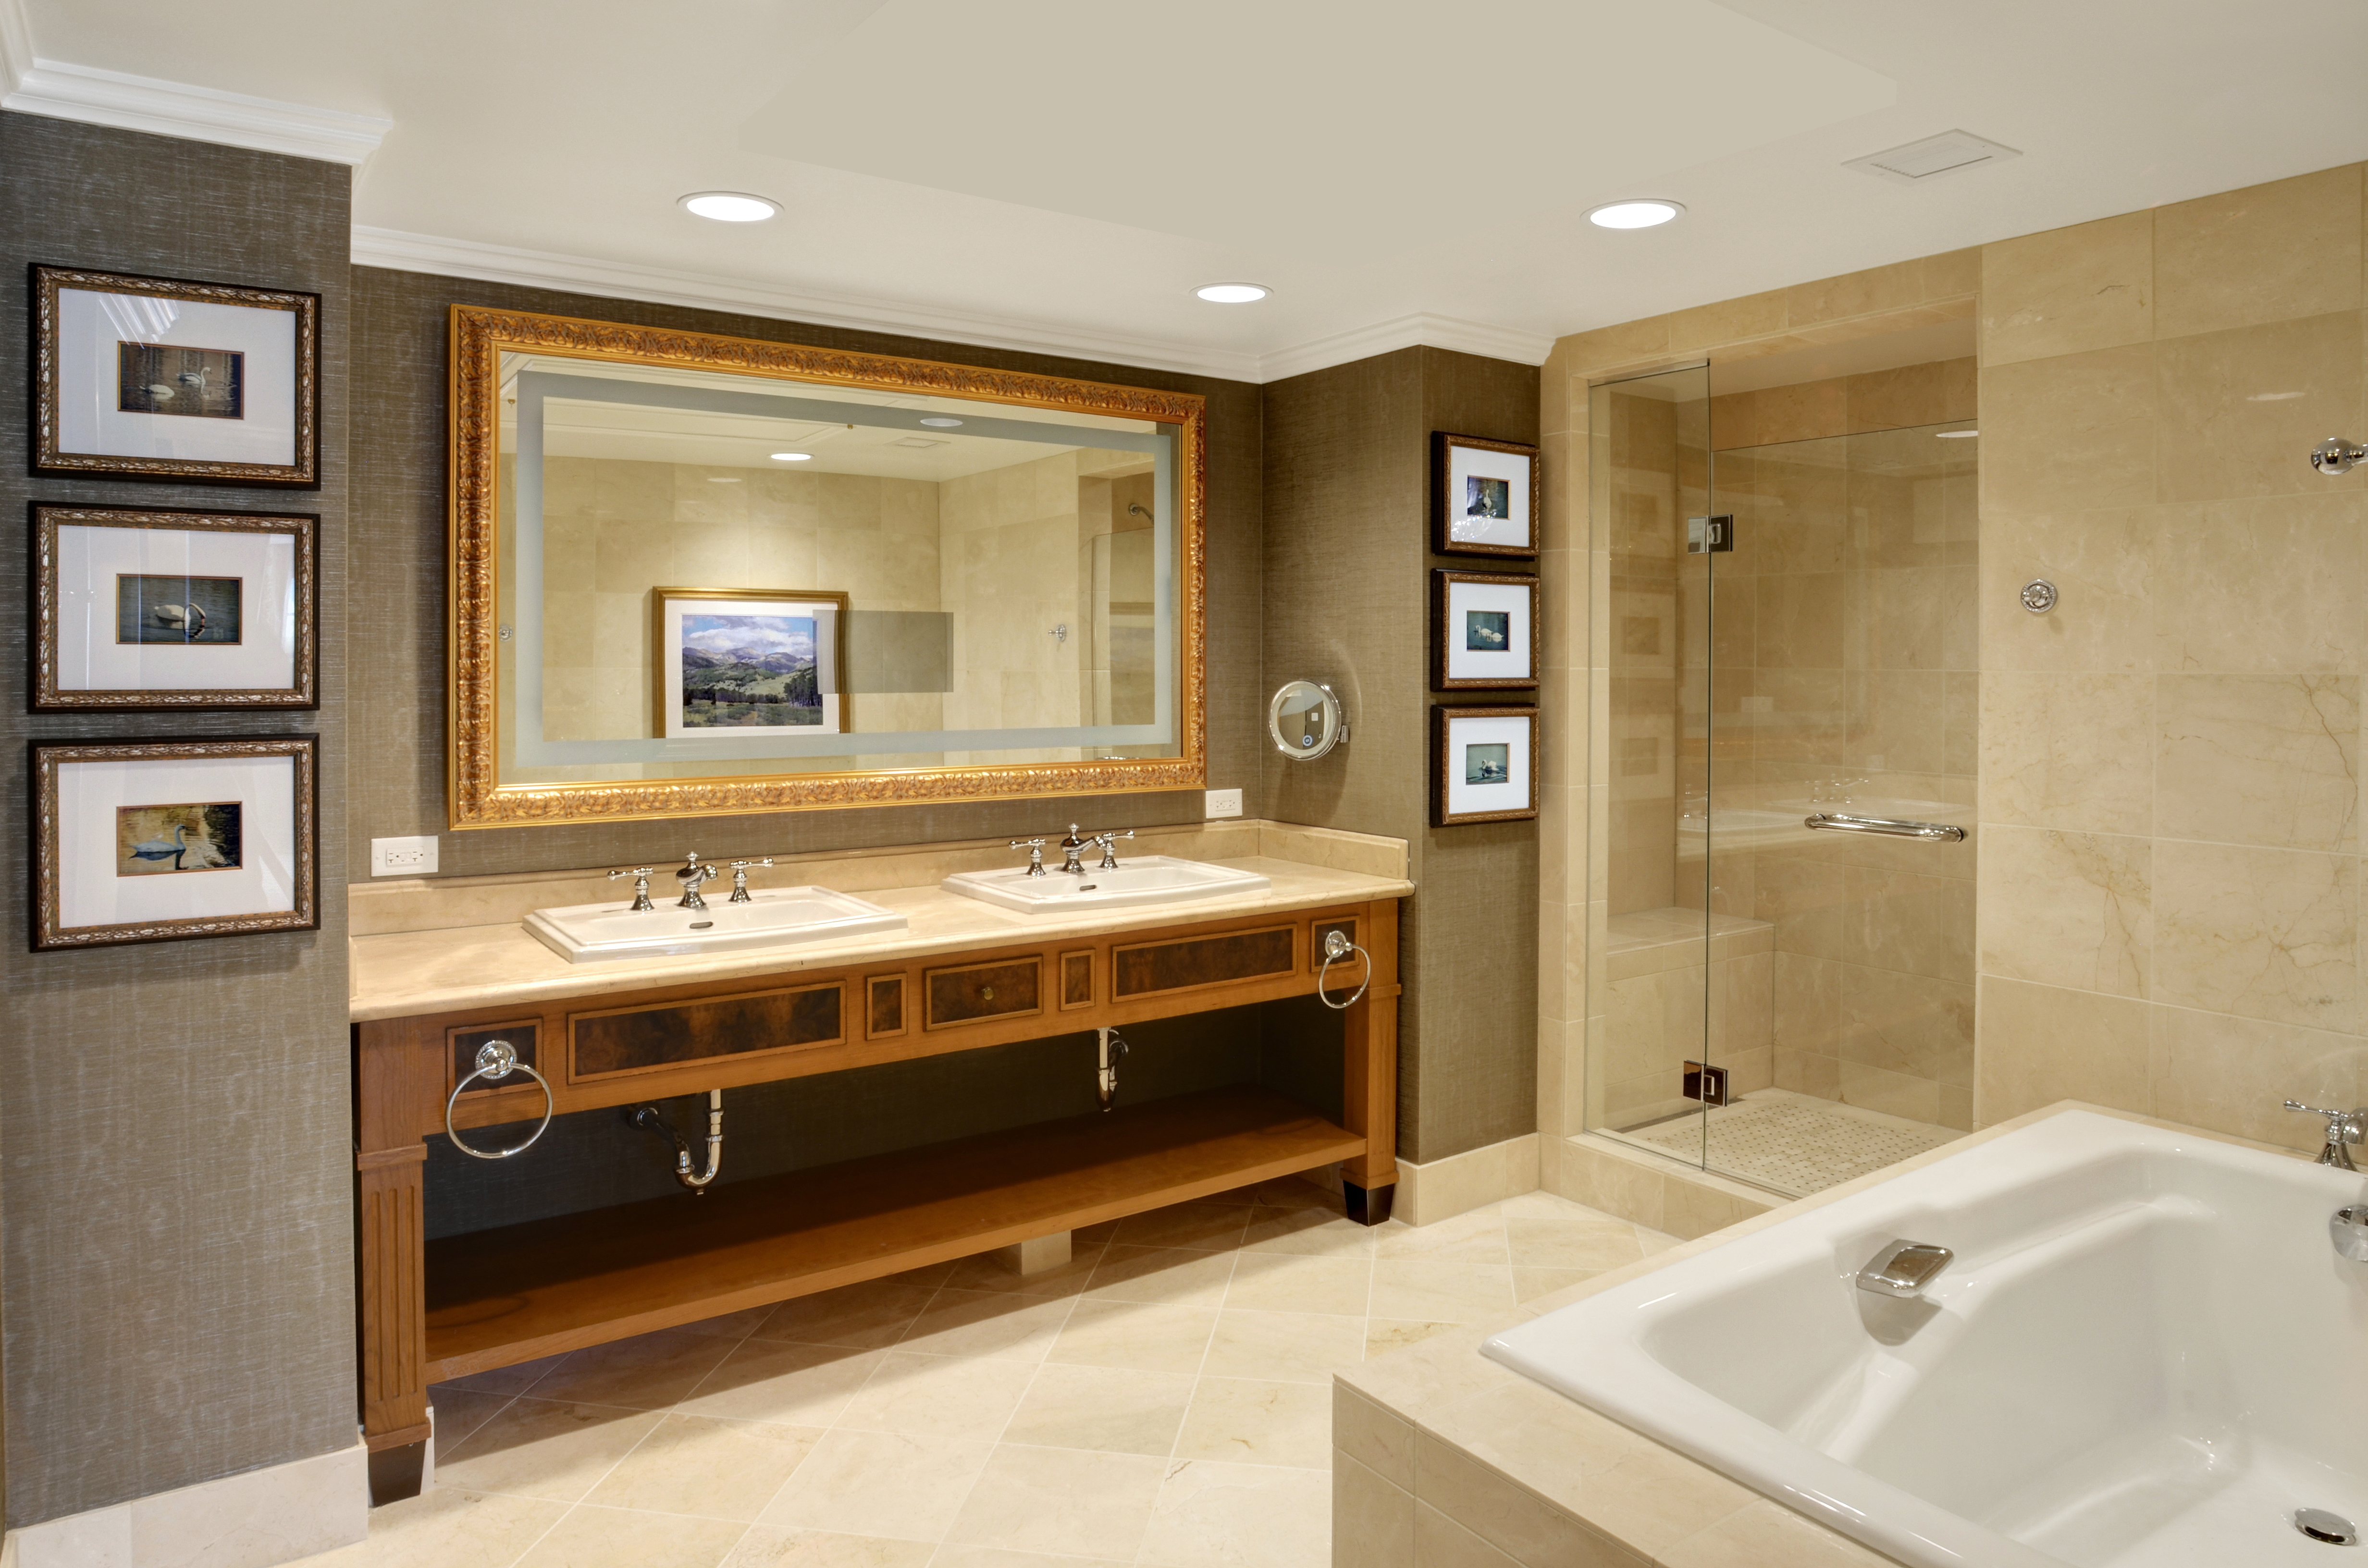 Superieur When Hotels Should Consider Modular Bathrooms